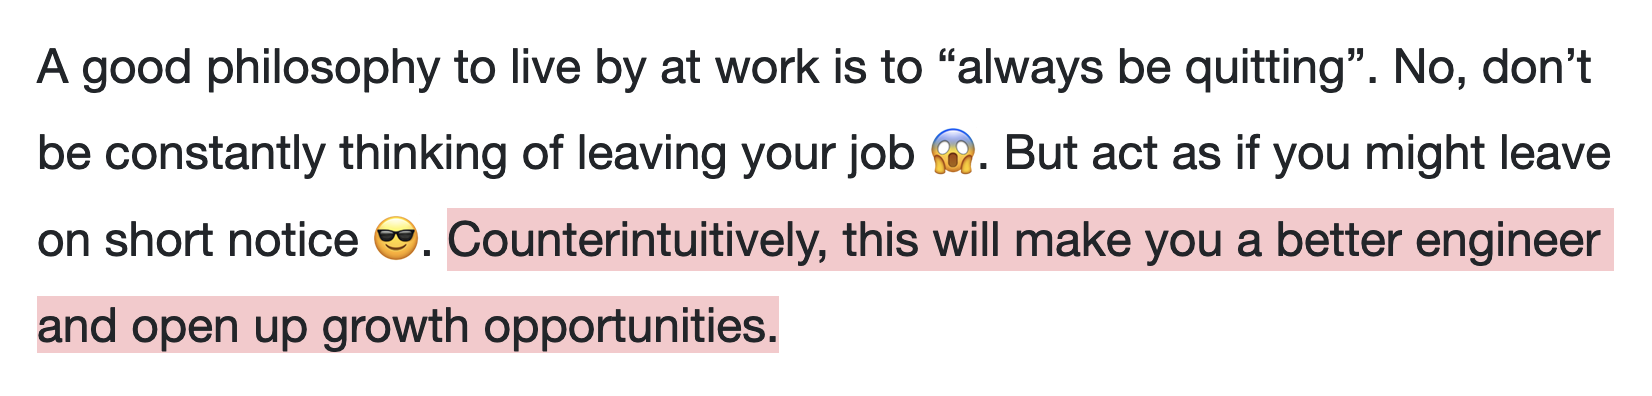 """A good philosophy to live by at work is to """"always be quitting"""". No, don't be constantly thinking of leaving your job 😱. But act as if you might leave on short notice 😎. Counterintuitively, this will make you a better engineer and open up growth opportunities."""